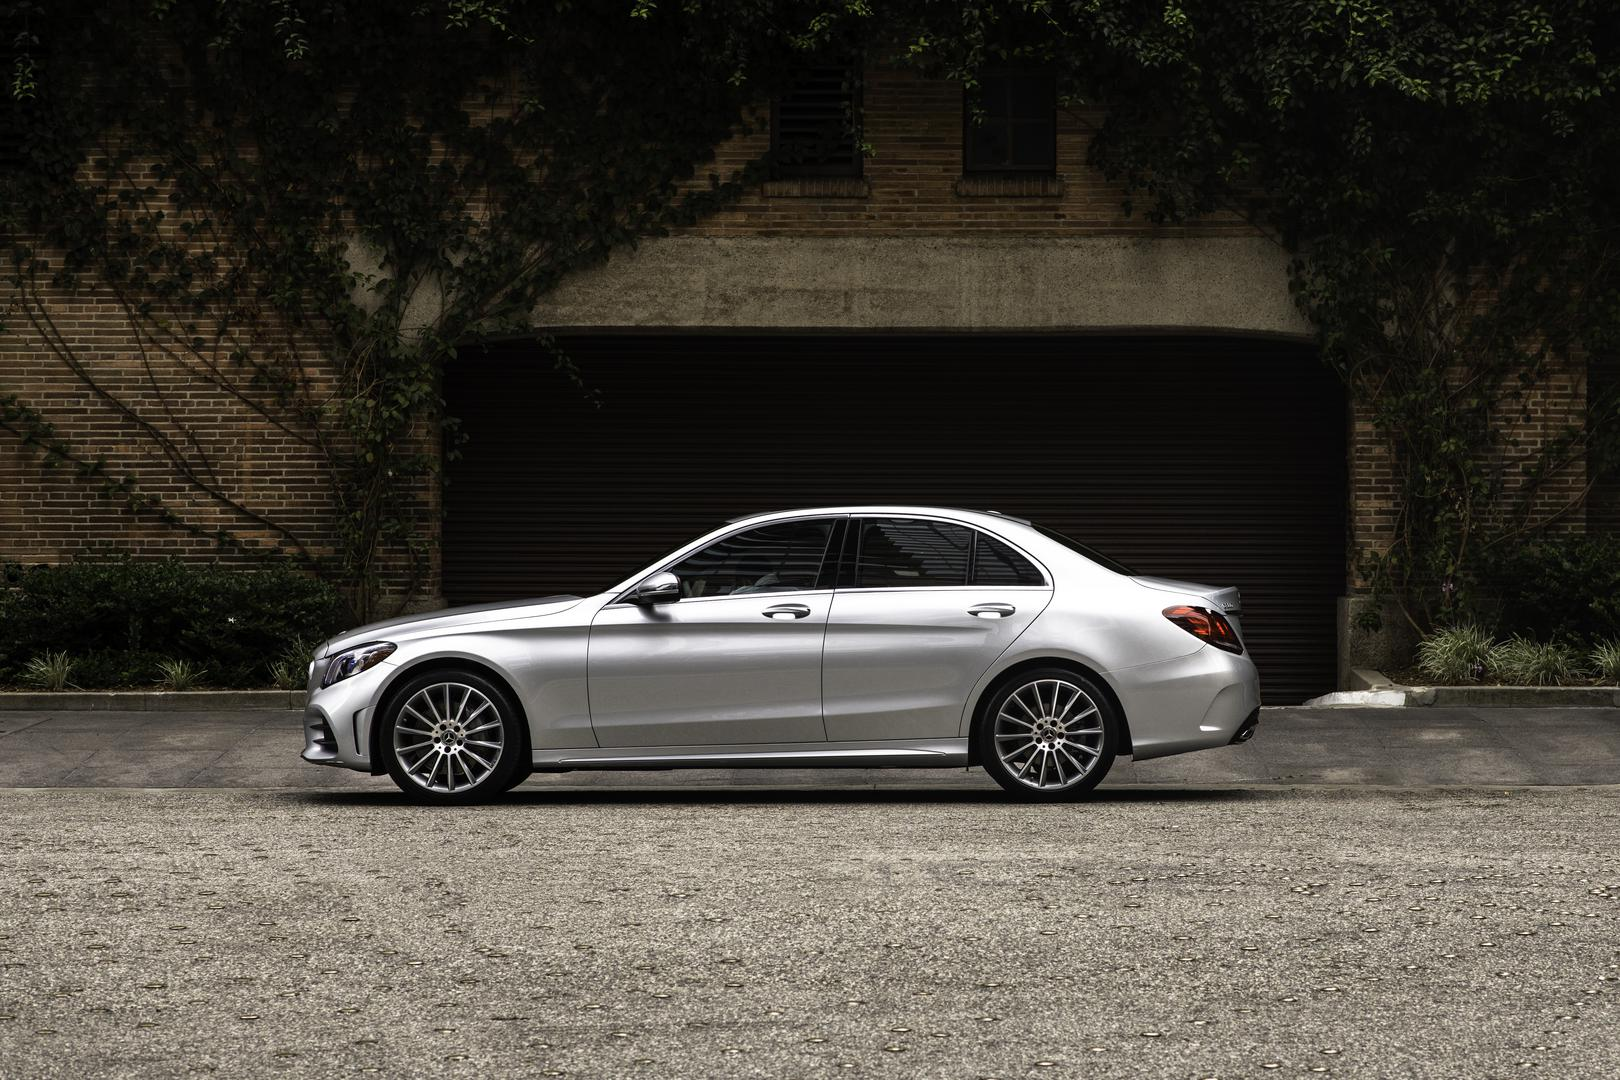 Mercedes-Benz C-Classs available in Rochester Hills, MI at Mercedes-Benz of Roechester